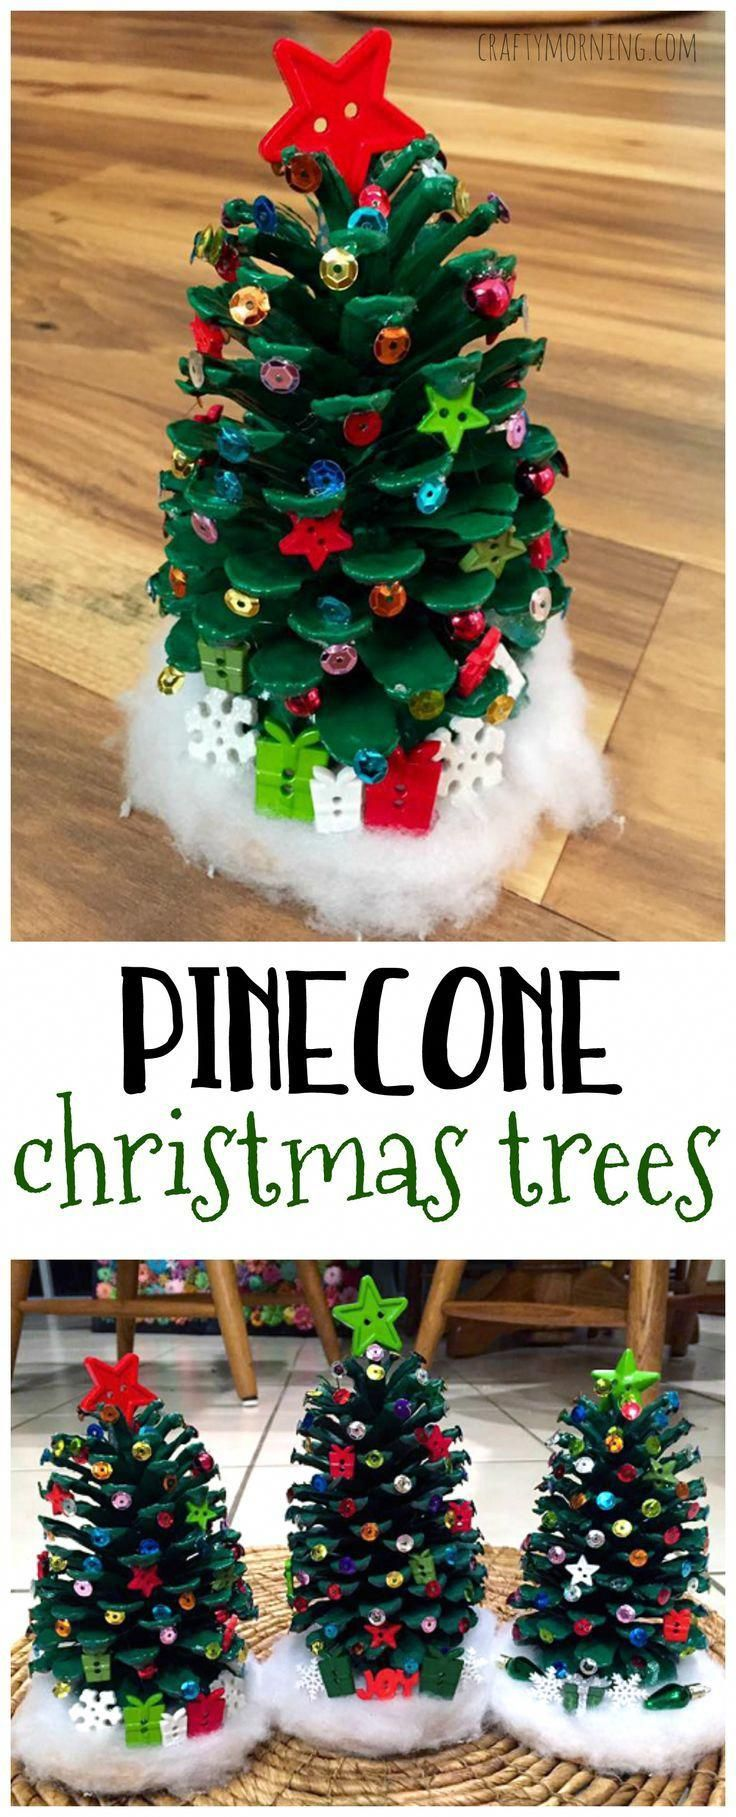 Decorate Pinecone Christmas Trees Crafty Morning Christmas Crafts Preschool Christmas Christmas Crafts For Kids